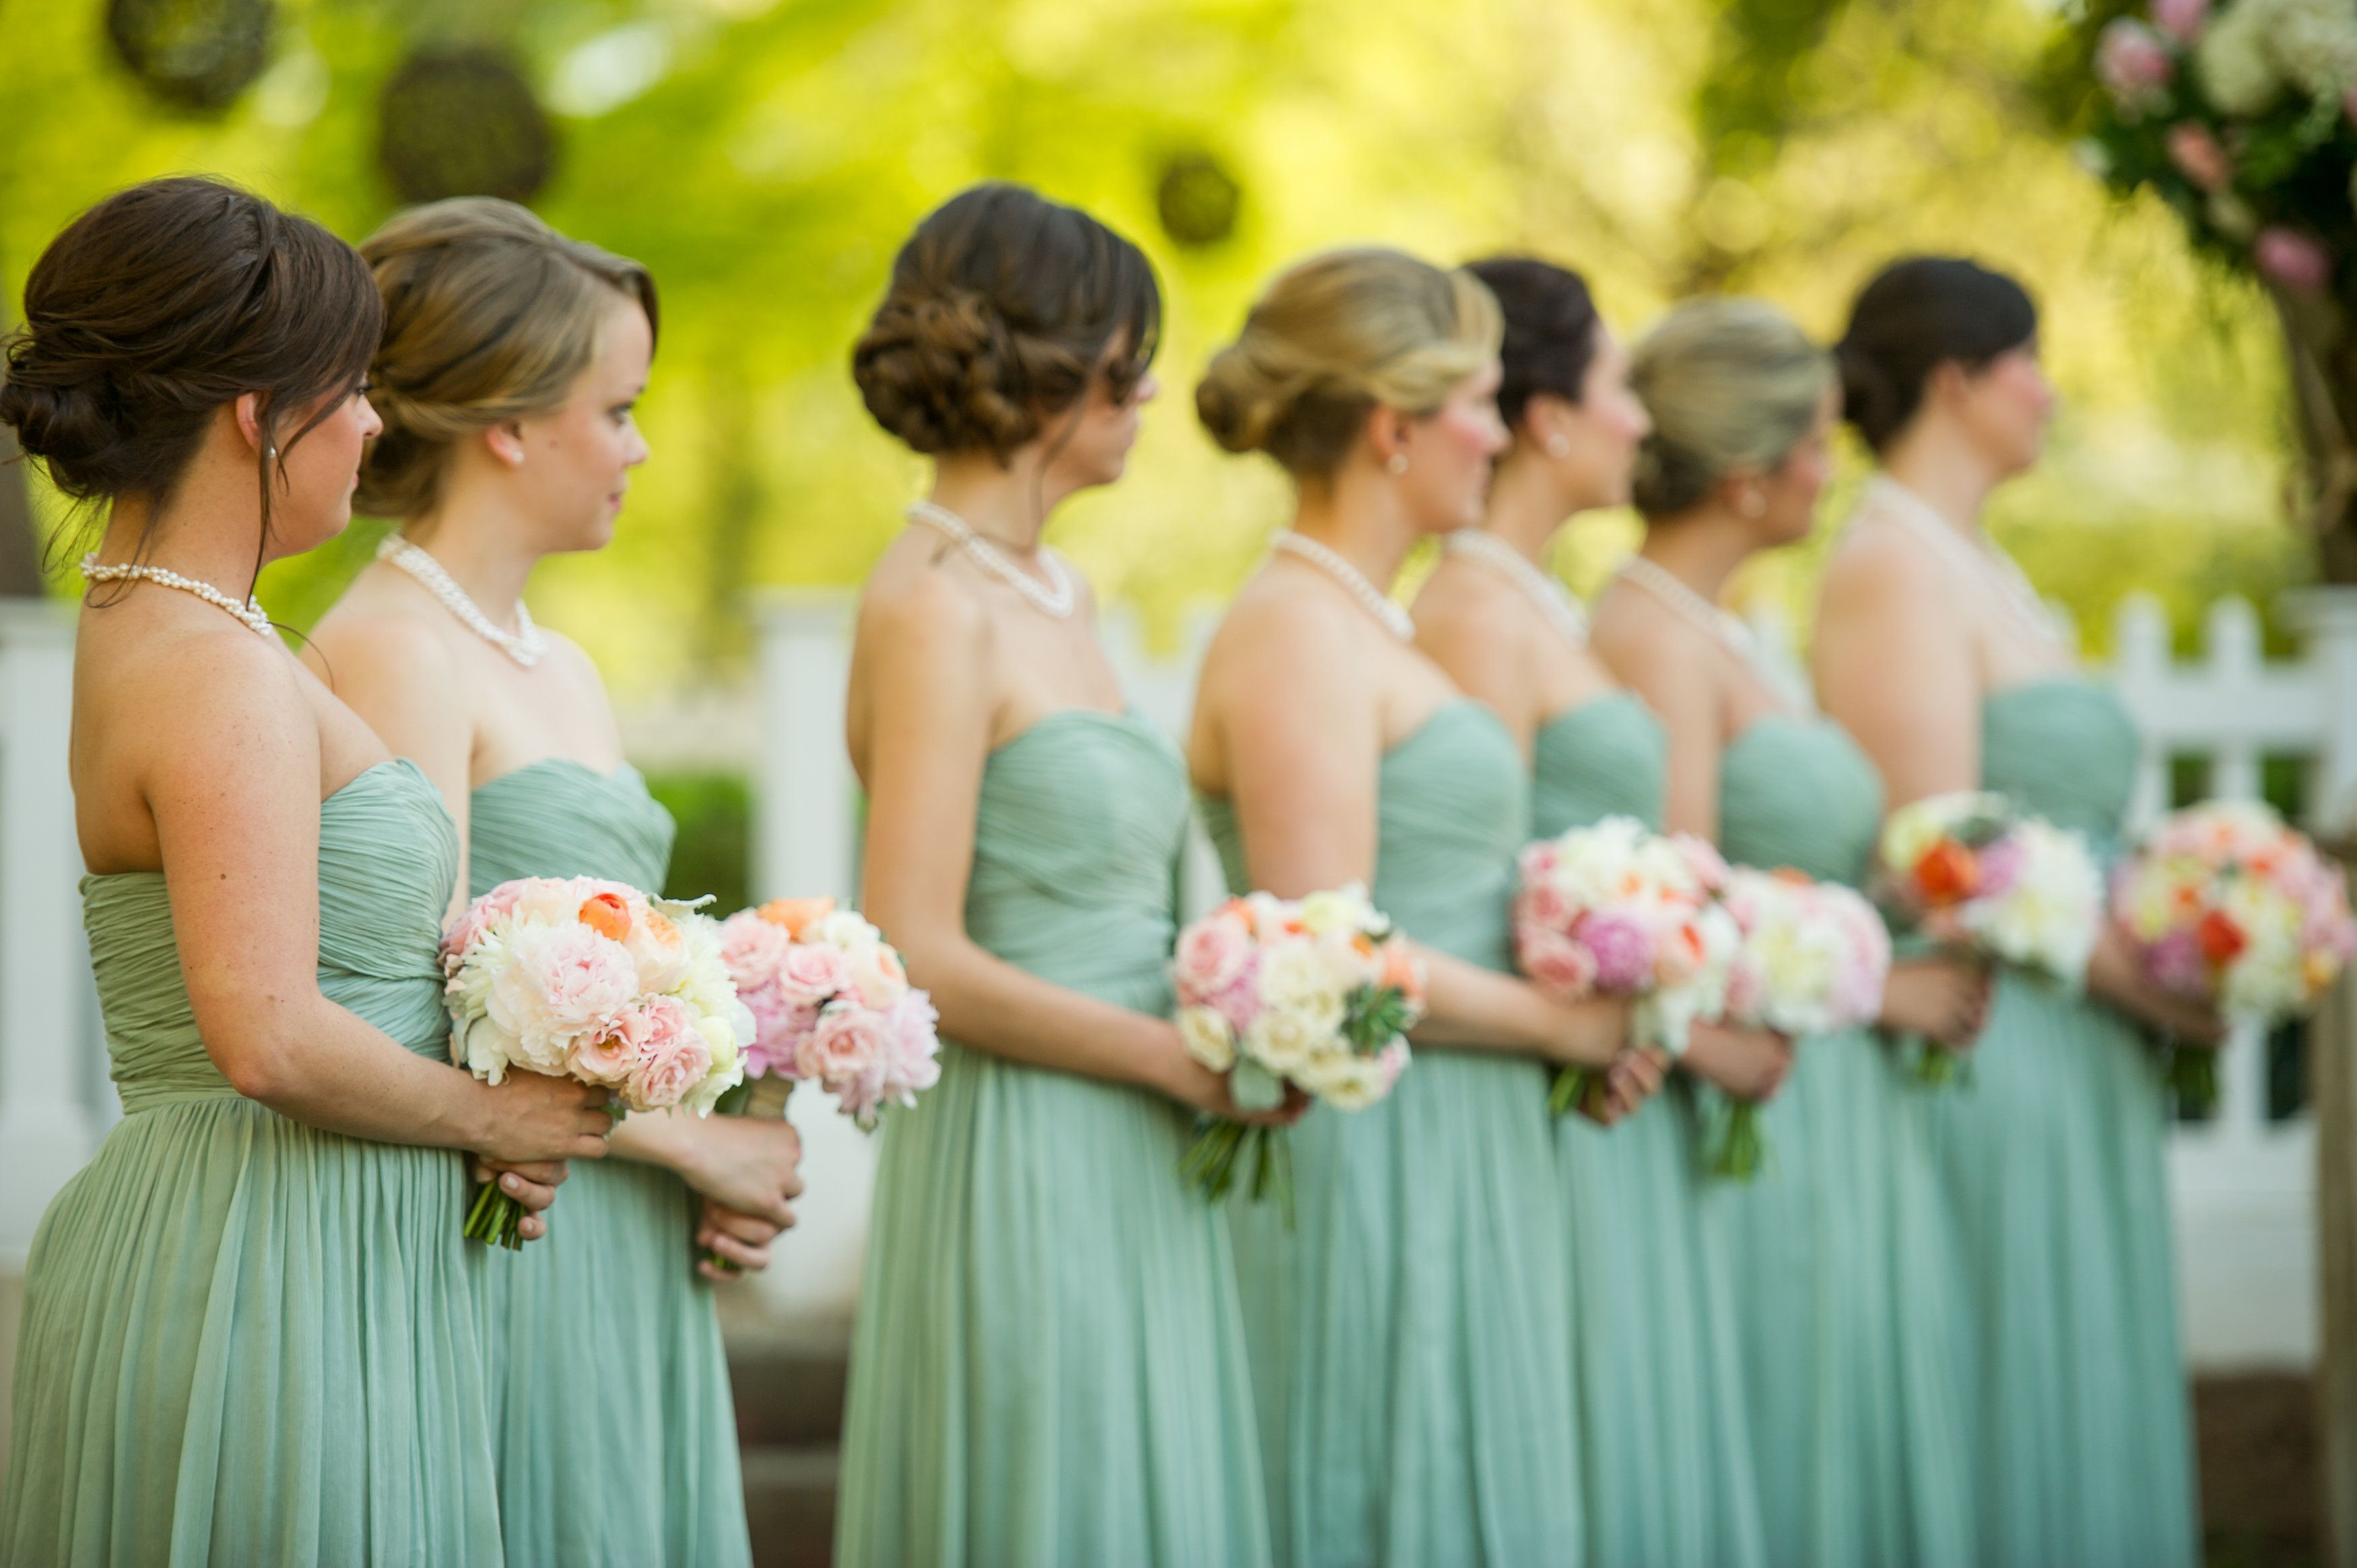 Peach and celadon wedding peach and mint wedding j crew dusty mint bridesmaid dresses ombrellifo Images